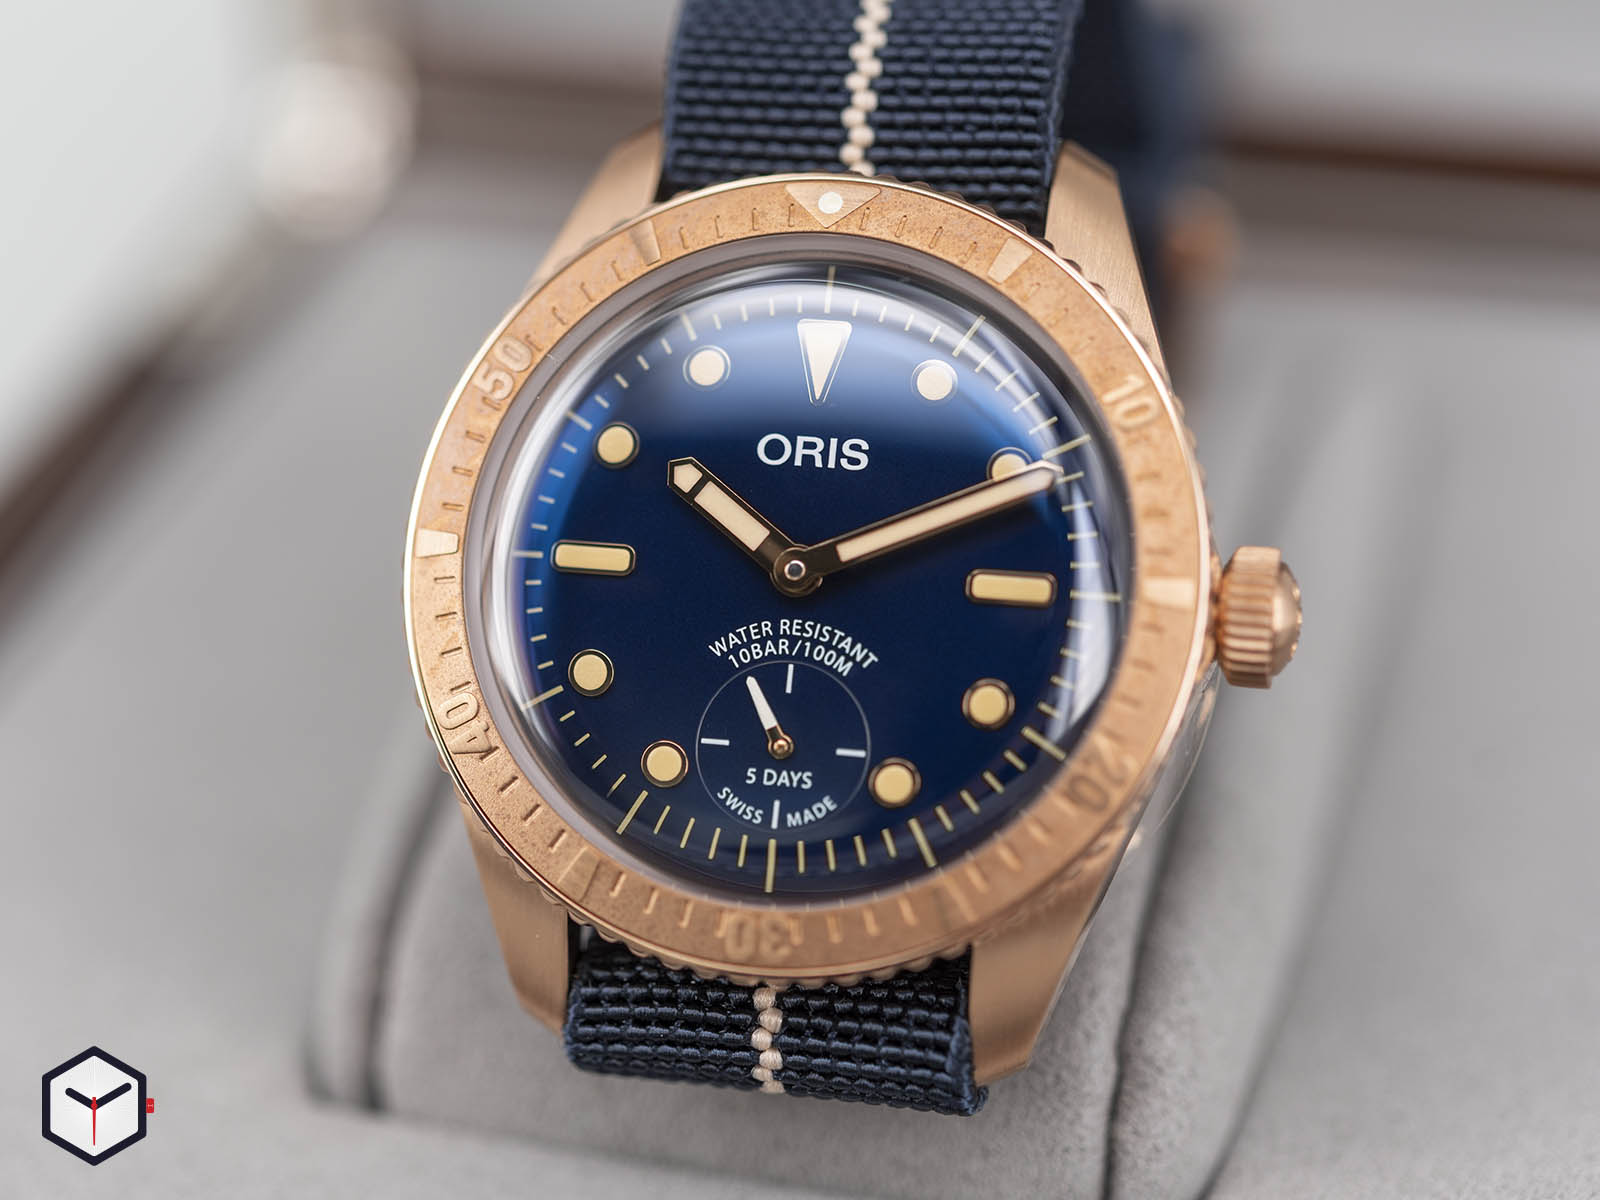 01-401-7764-3185-oris-carl-brashear-calibre-401-limited-edition-3.jpg